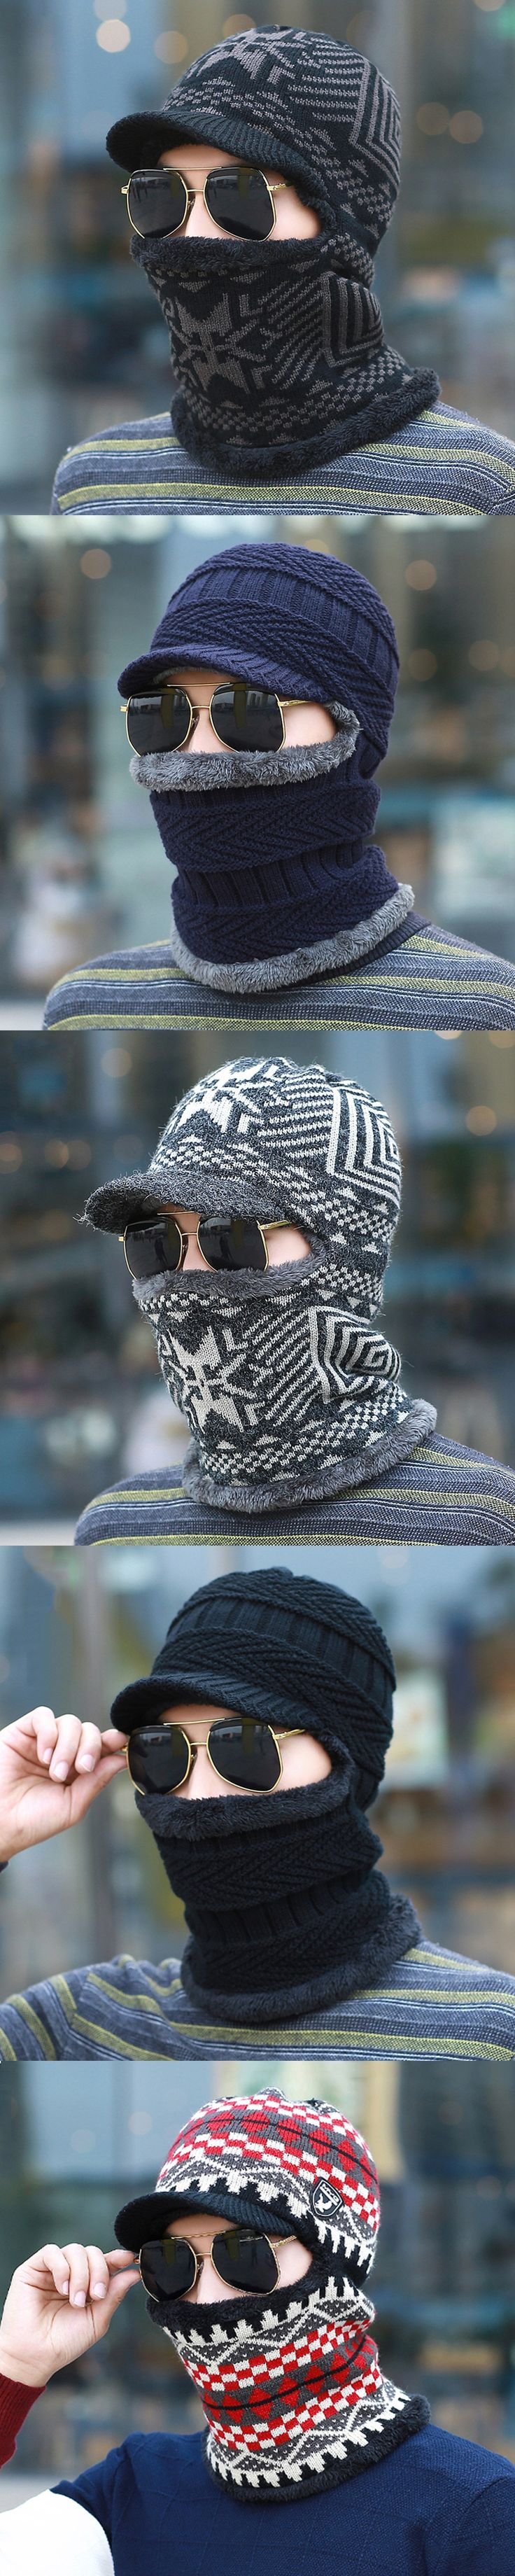 BKONE New Balaclava Winter Men's Skullies Wool Knitted Balaclava Cap Ninja Mask Thermal Plush Pocket Hat Snow Cap